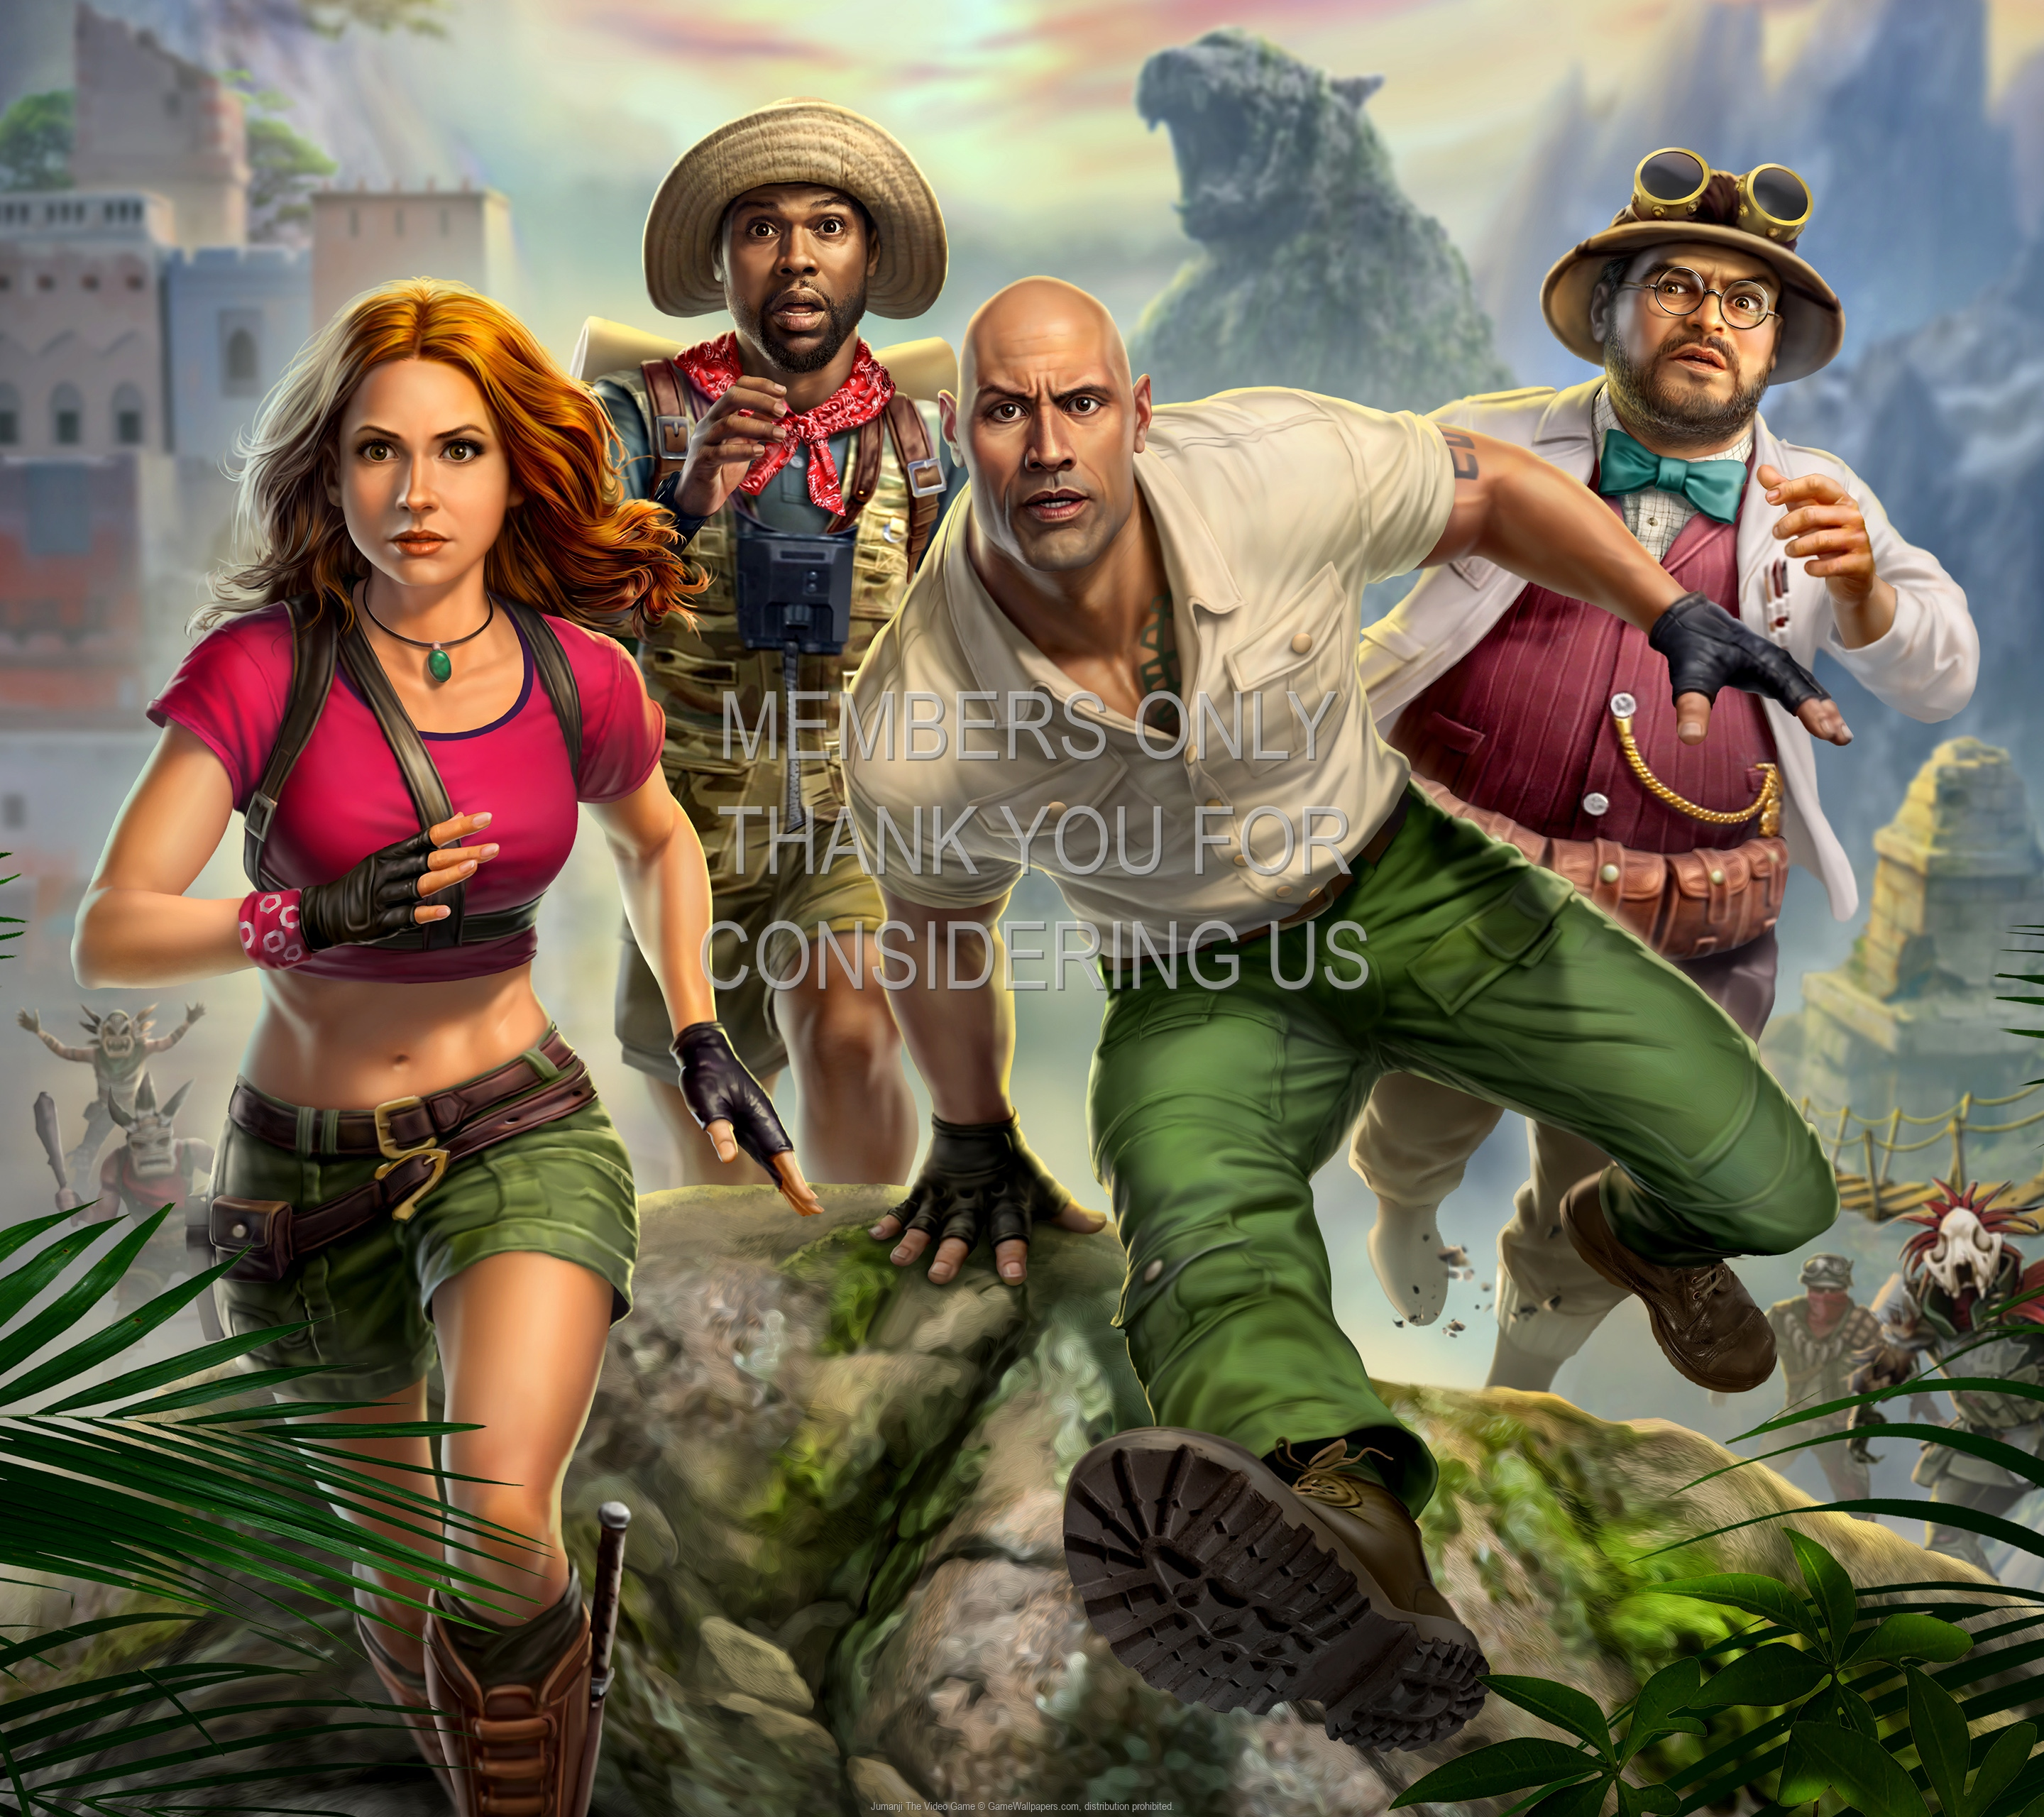 Jumanji: The Video Game 1920x1080 Mobiele achtergrond 01